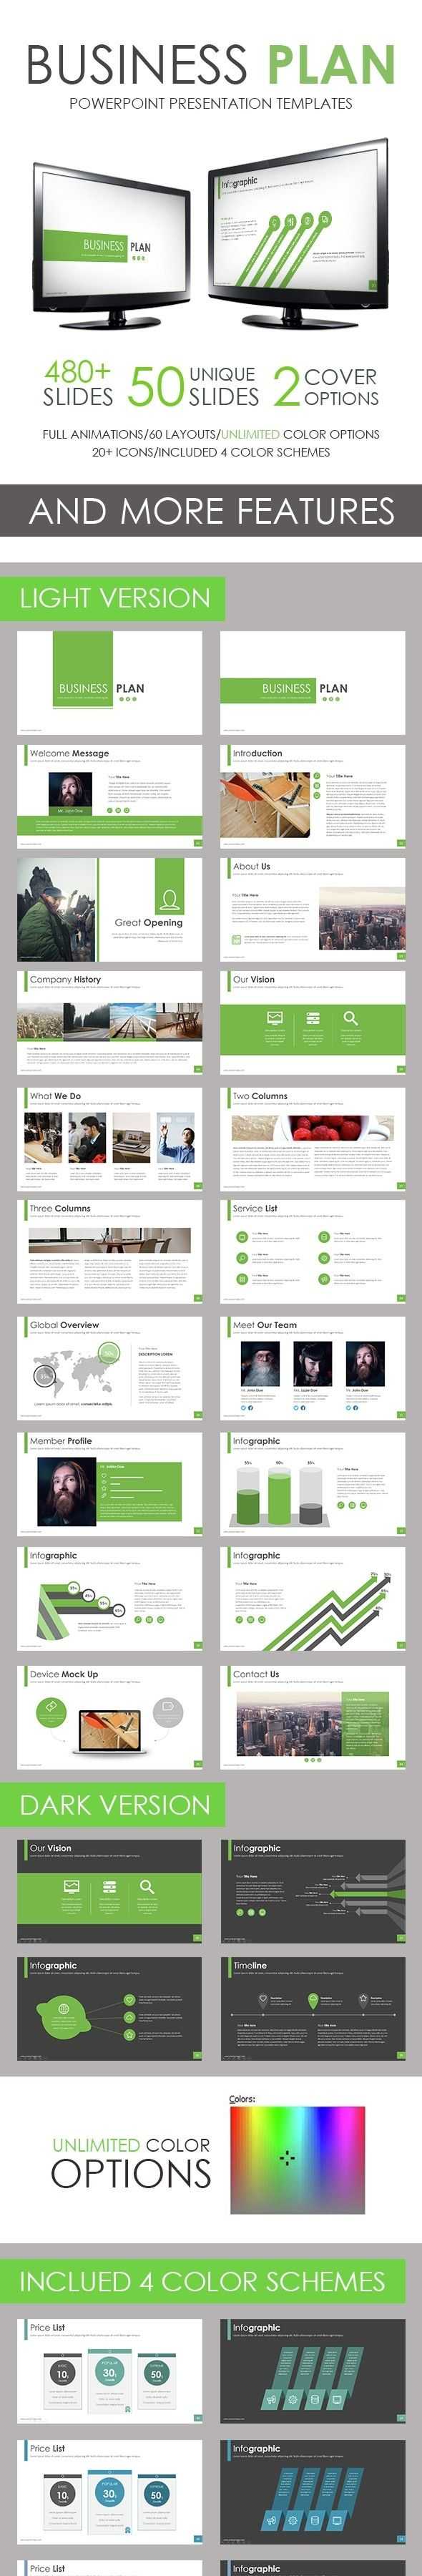 Business Plan Powerpoint Template Elegant Powerpoint Templates